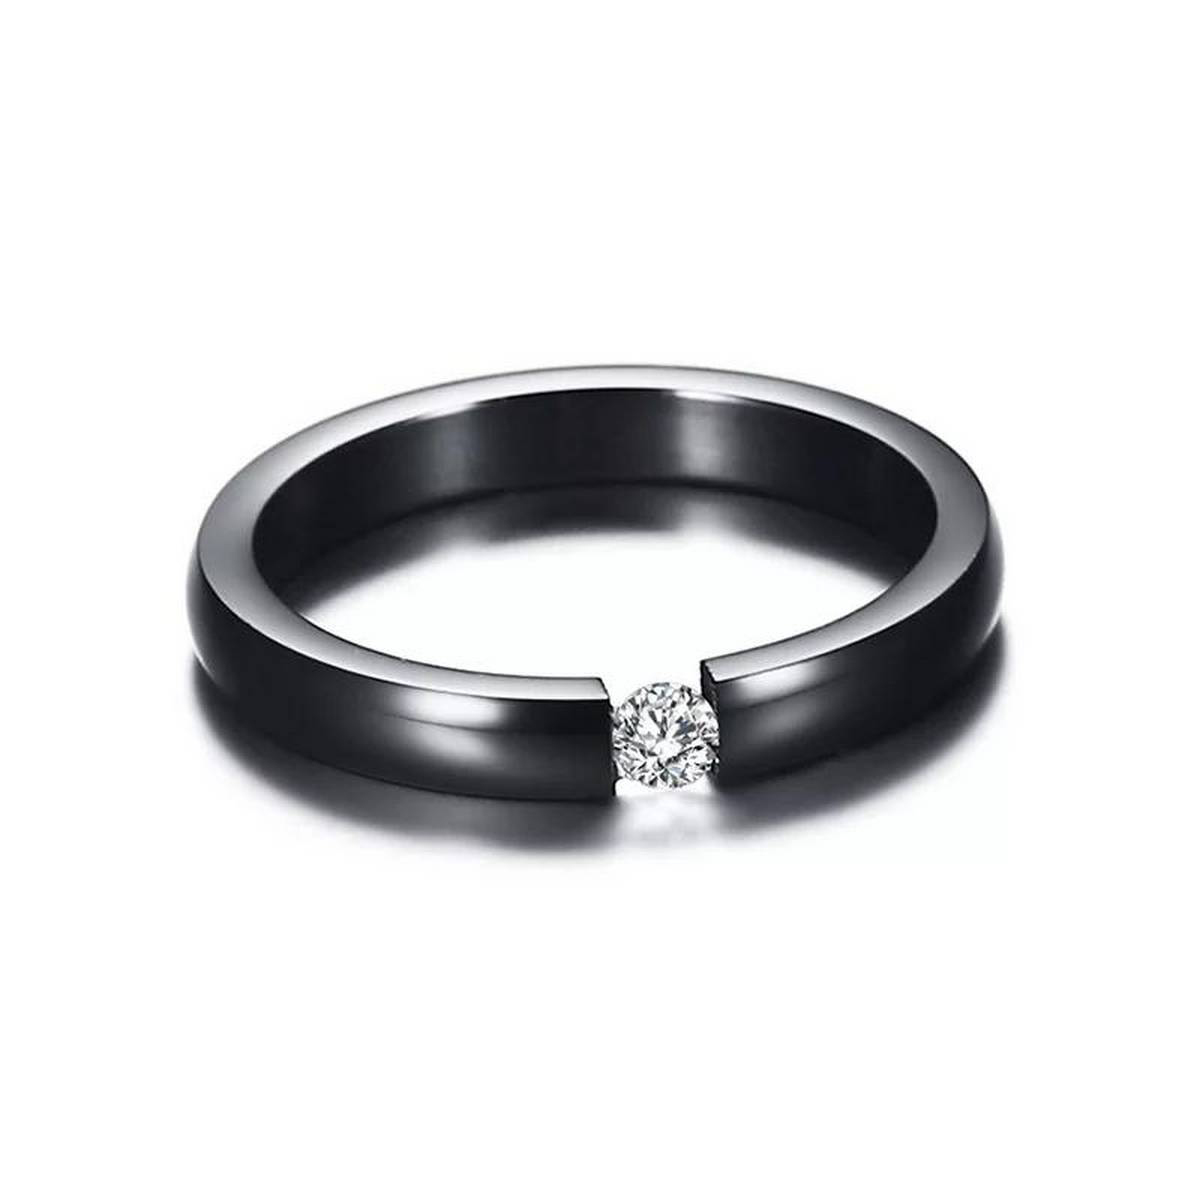 3MM Black Stainless Steel Cubic Zirconia Rings for Women Simple Femme Engagement Ring